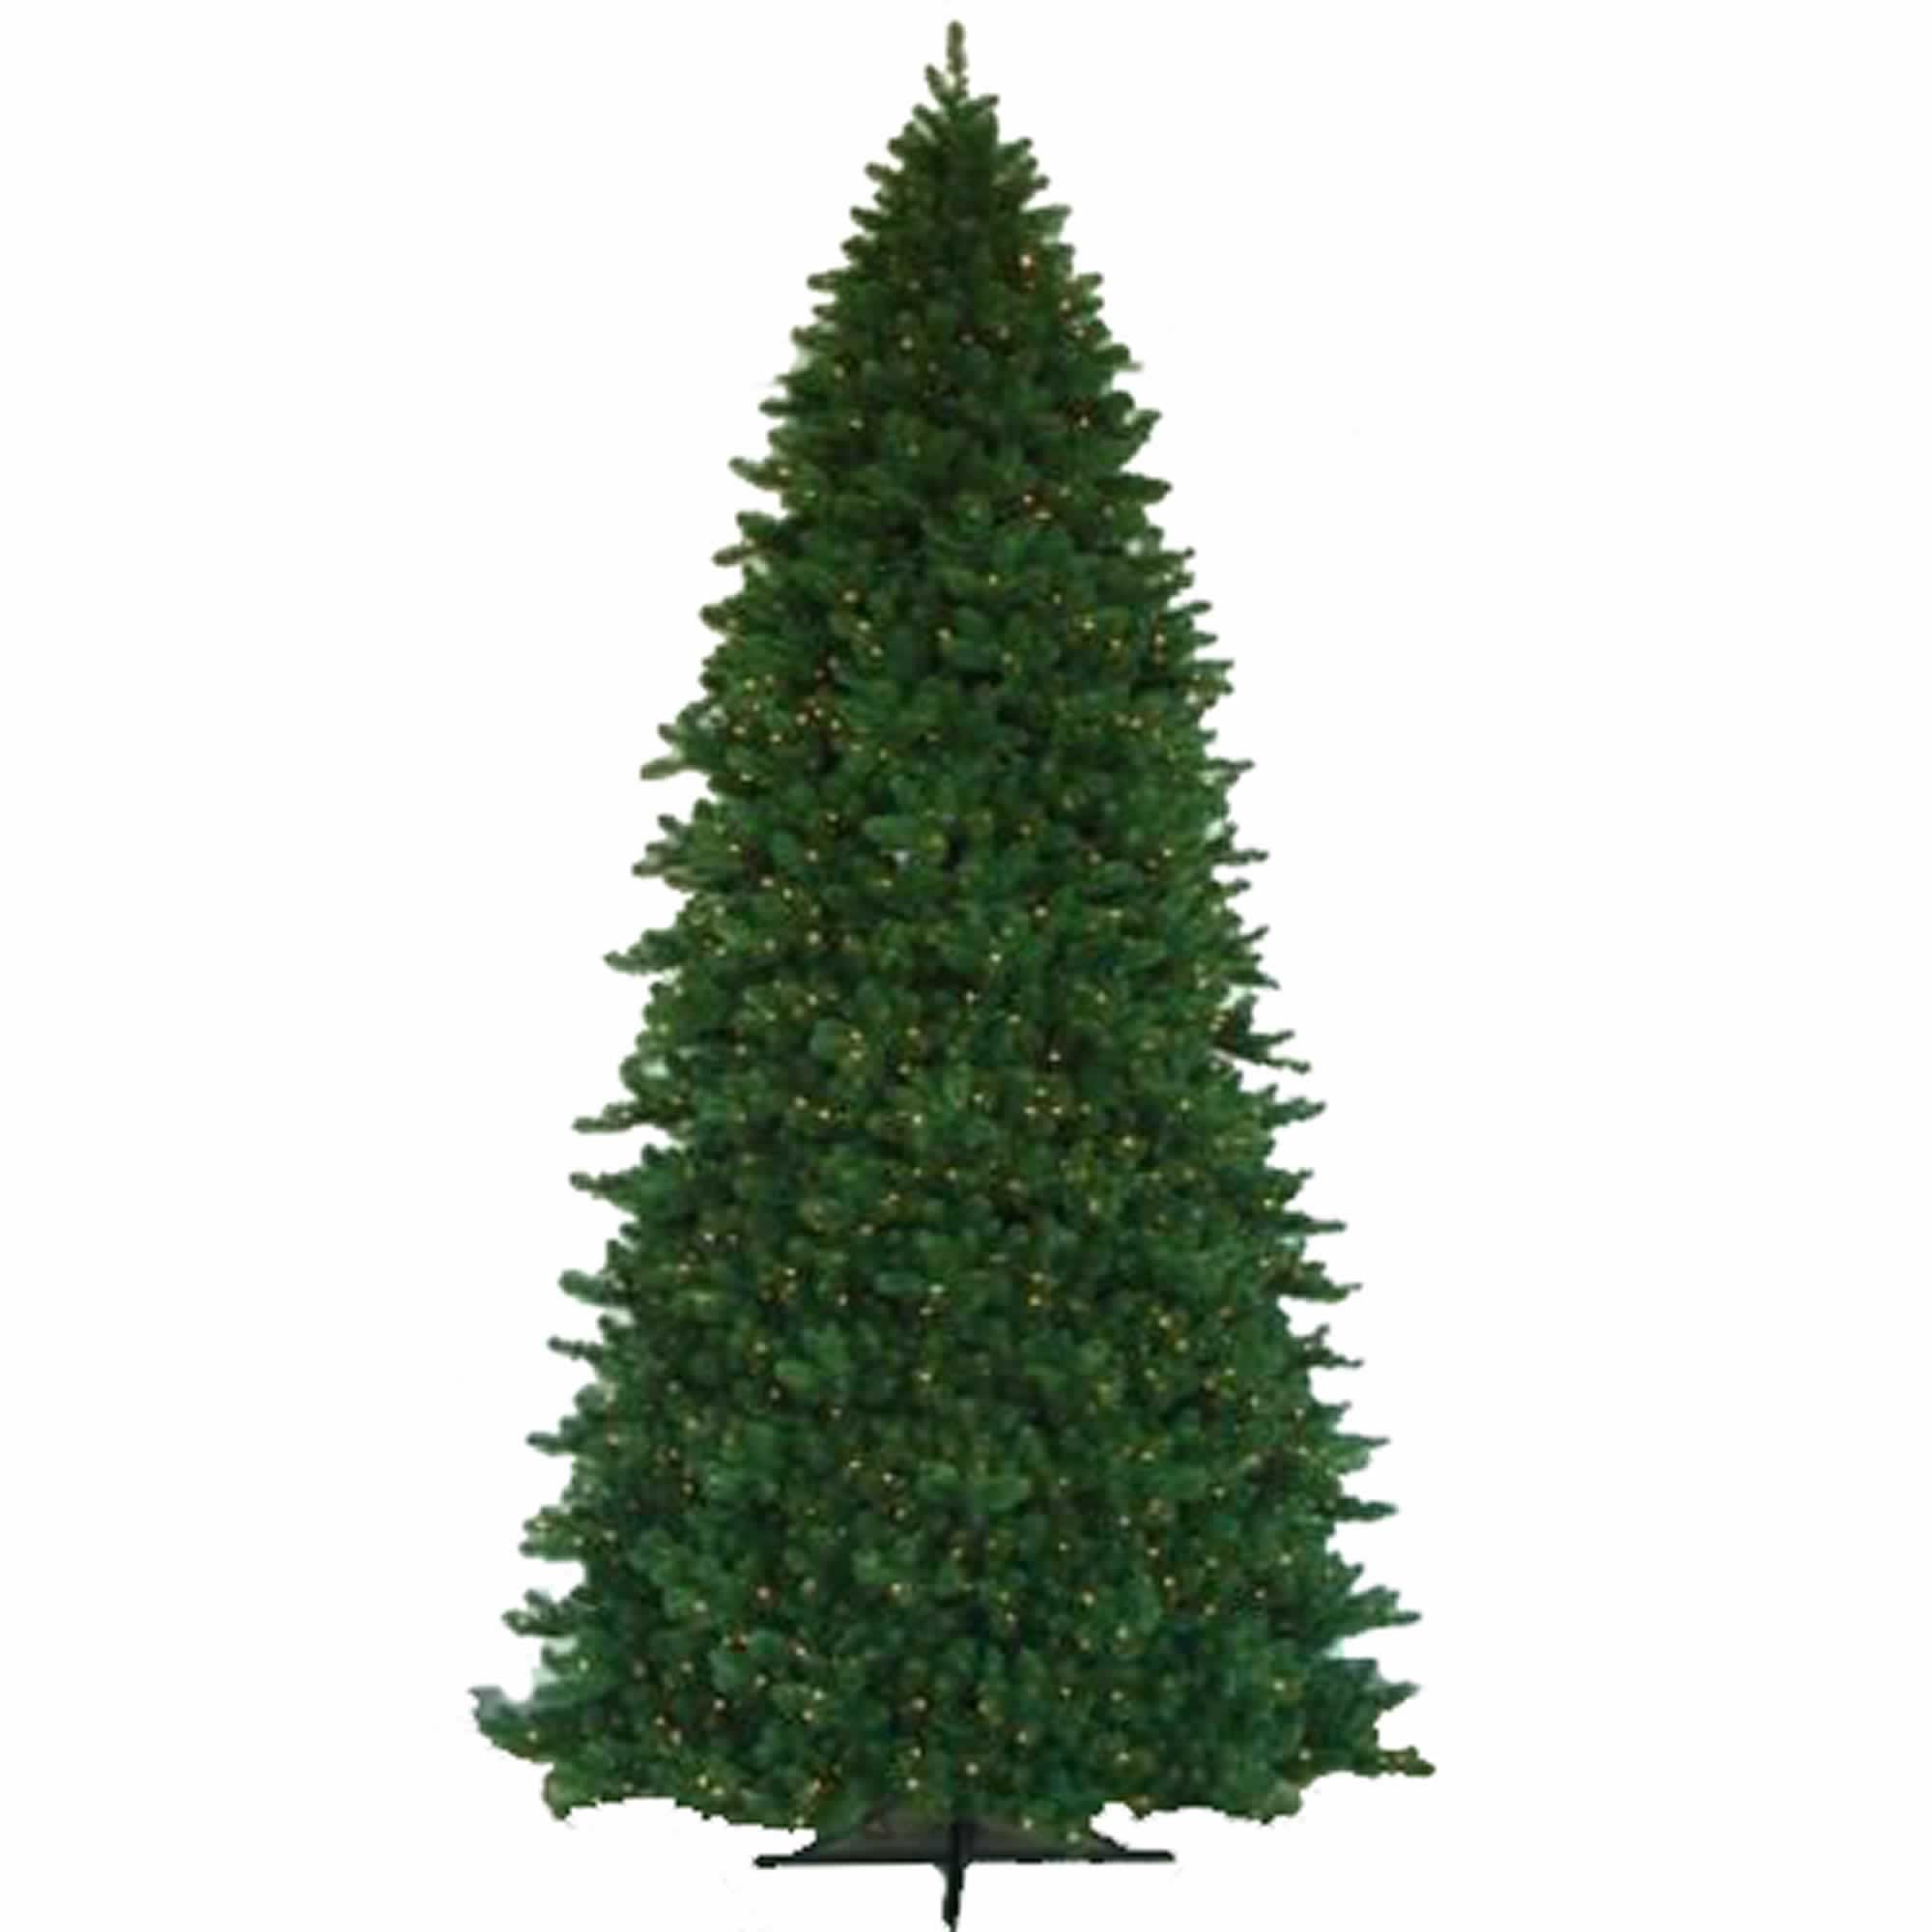 What Is The Best Artificial Christmas Tree To Buy